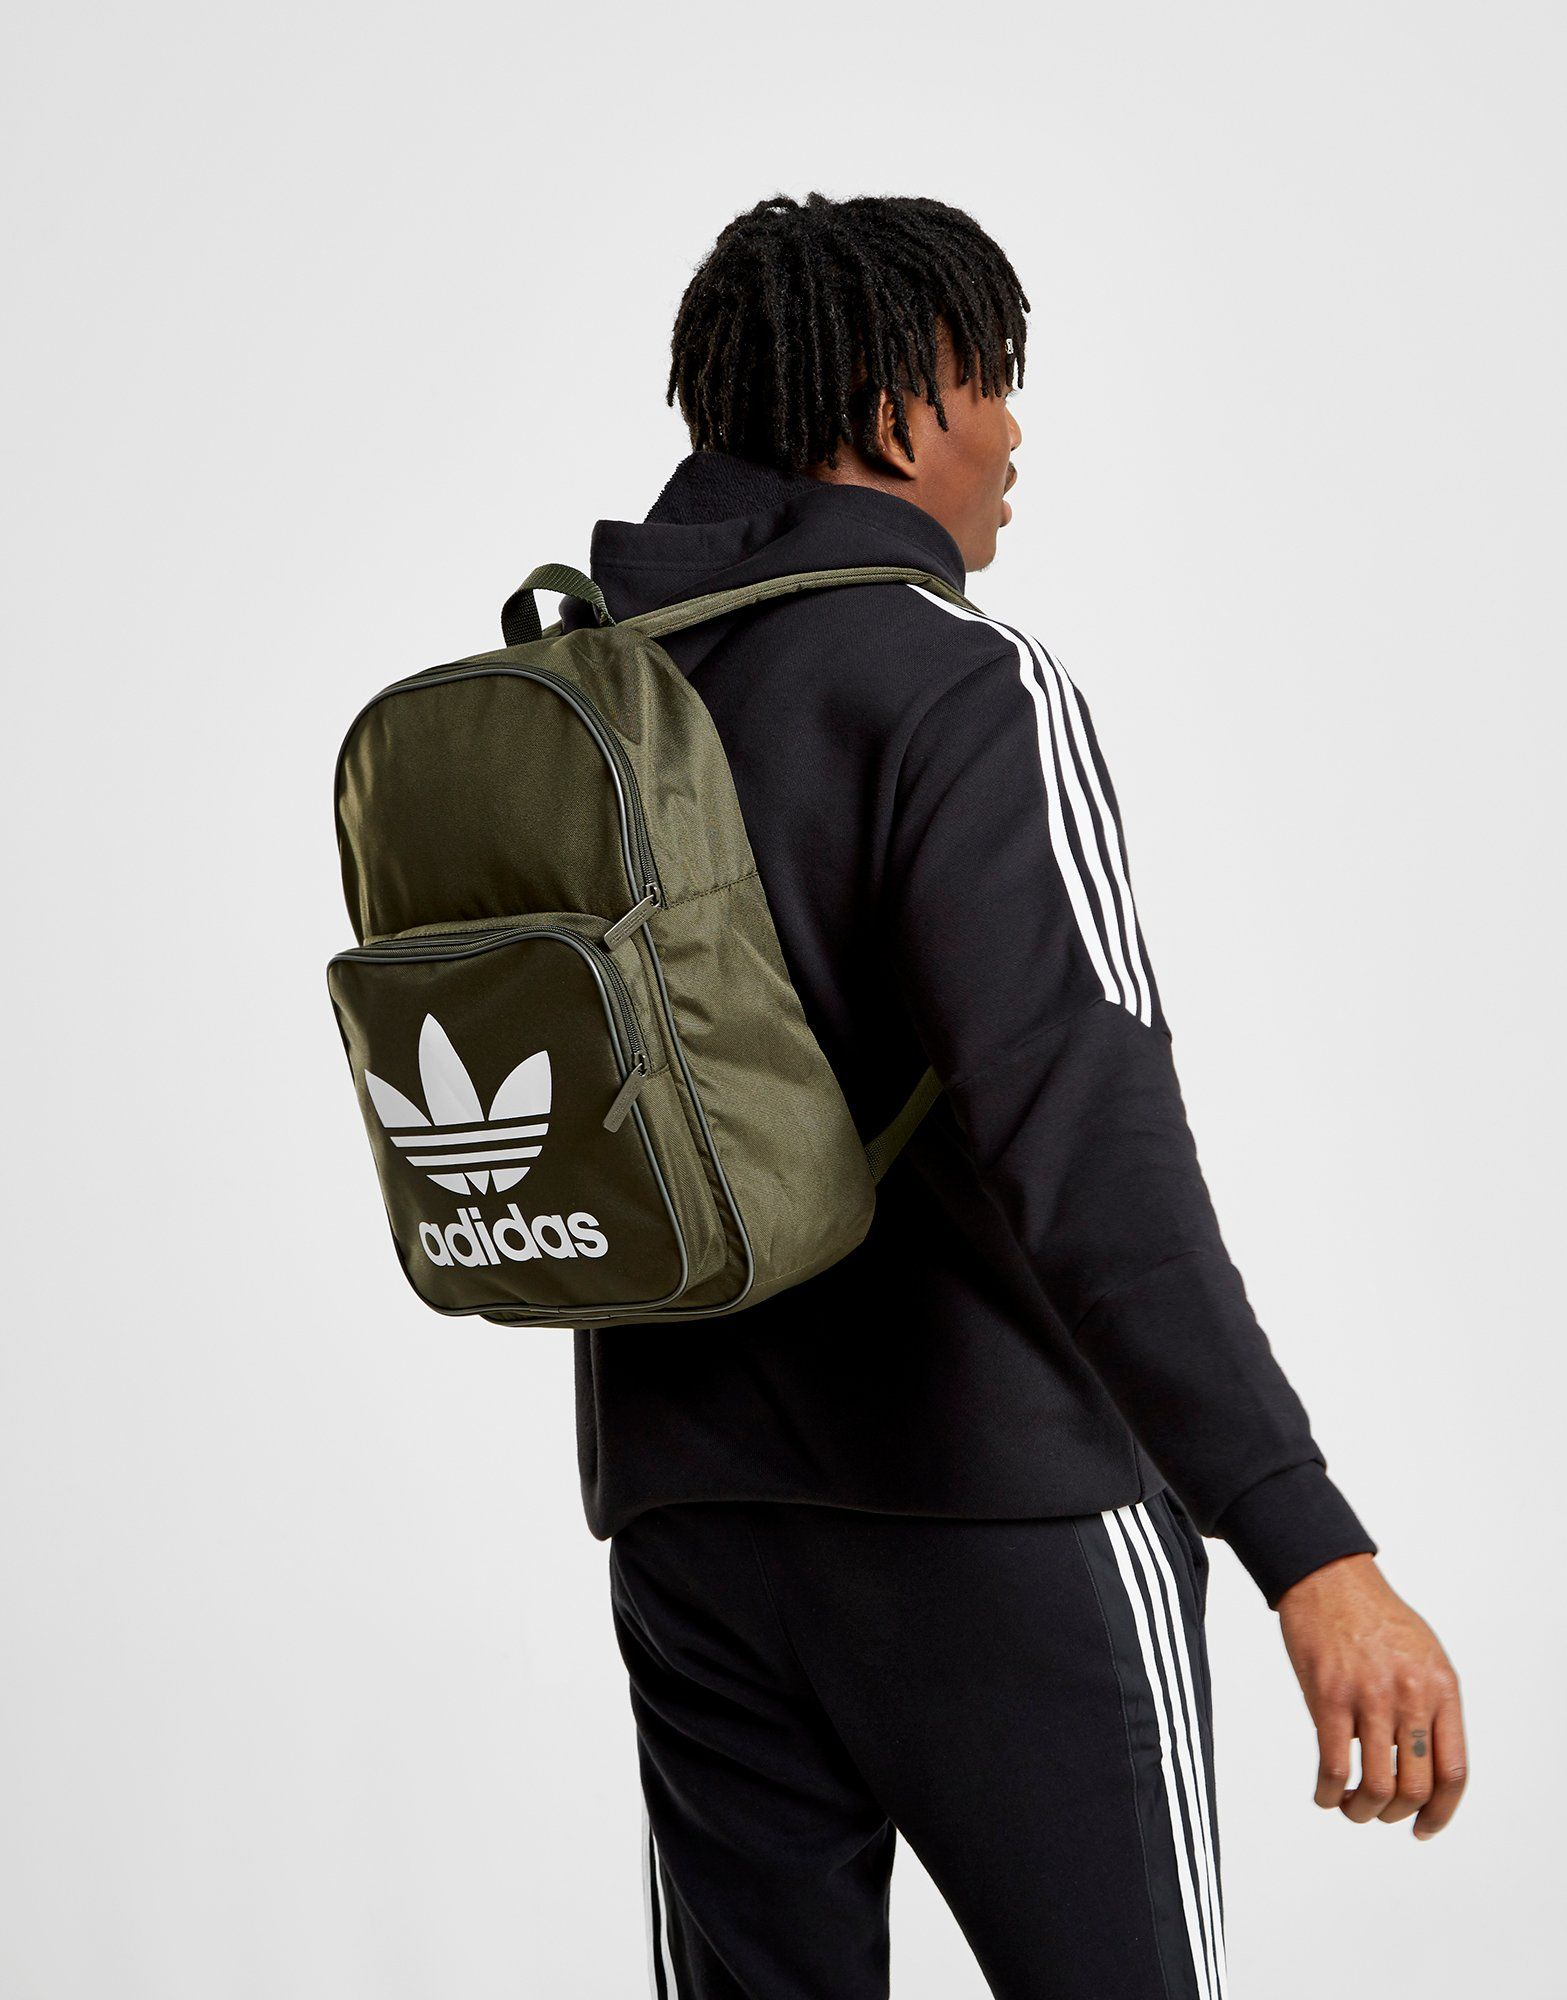 487d53054 adidas Originals Classic Trefoil Backpack | JD Sports